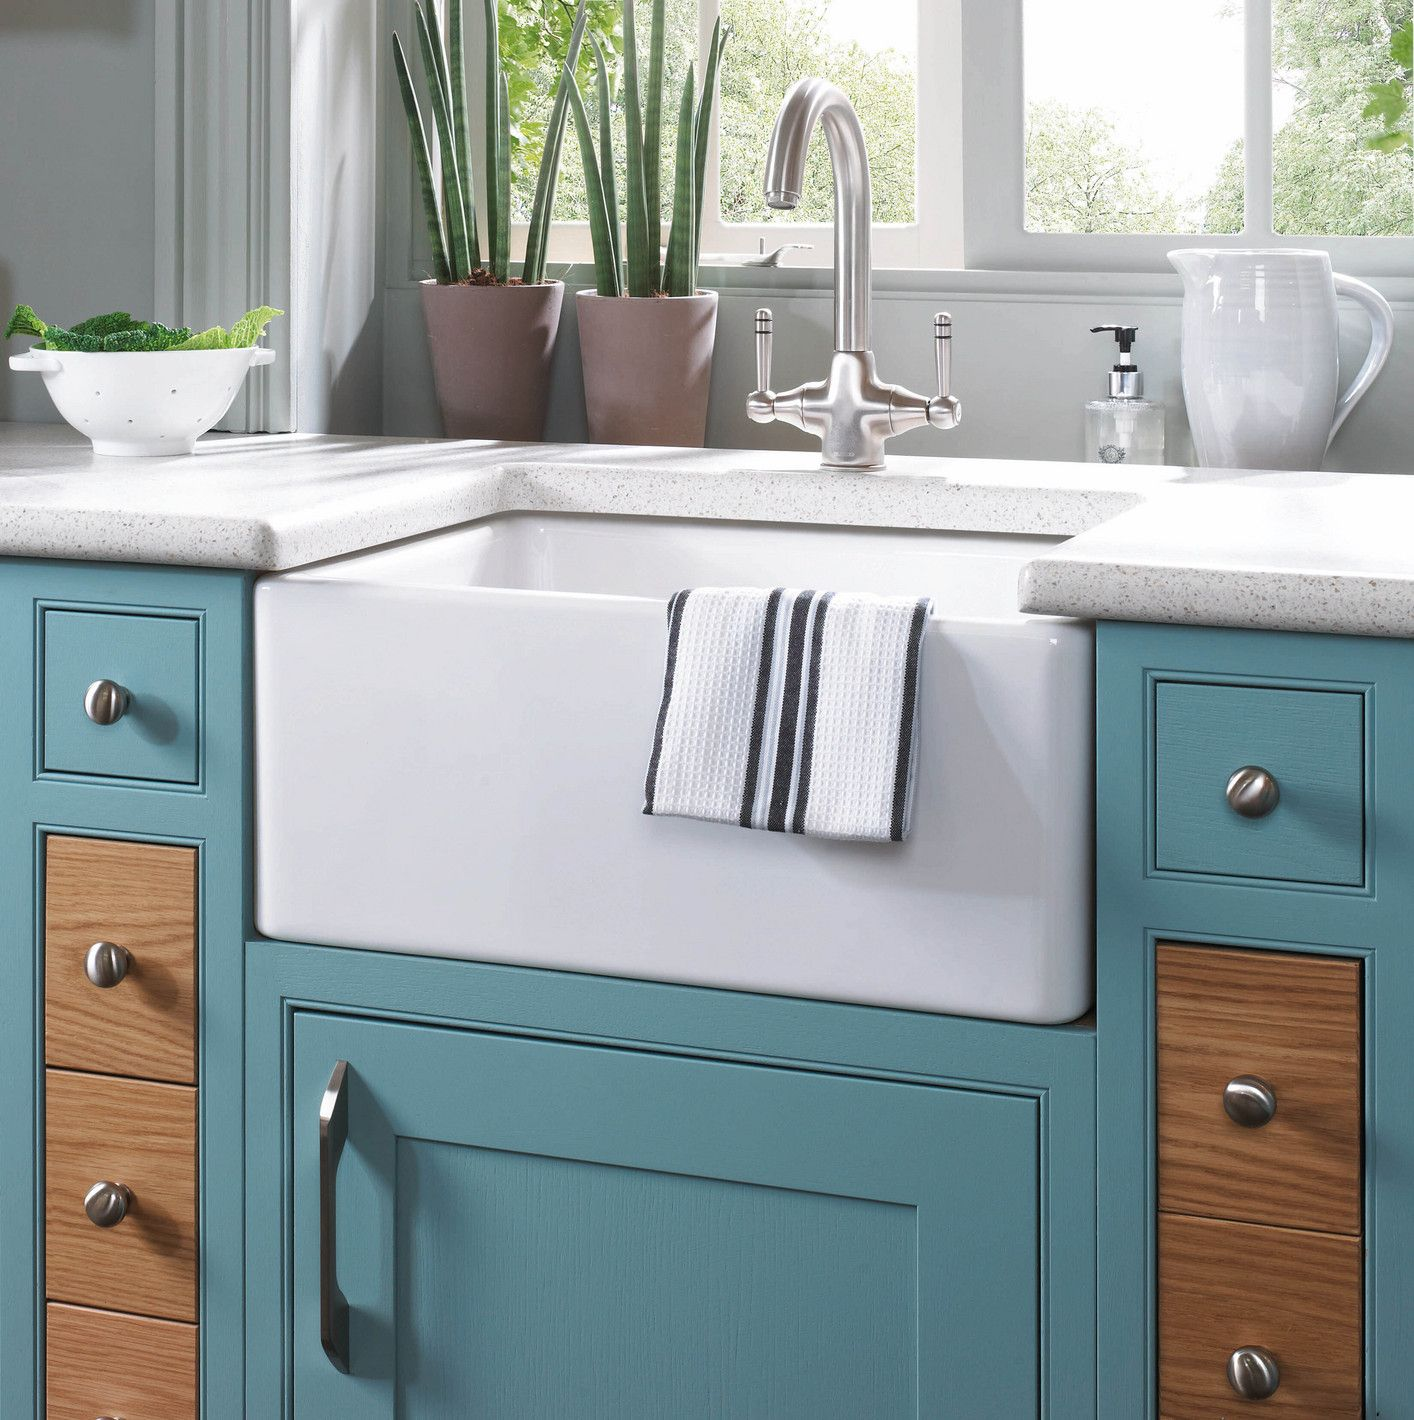 English Revival - Period Kitchen Designs with a style for today ...